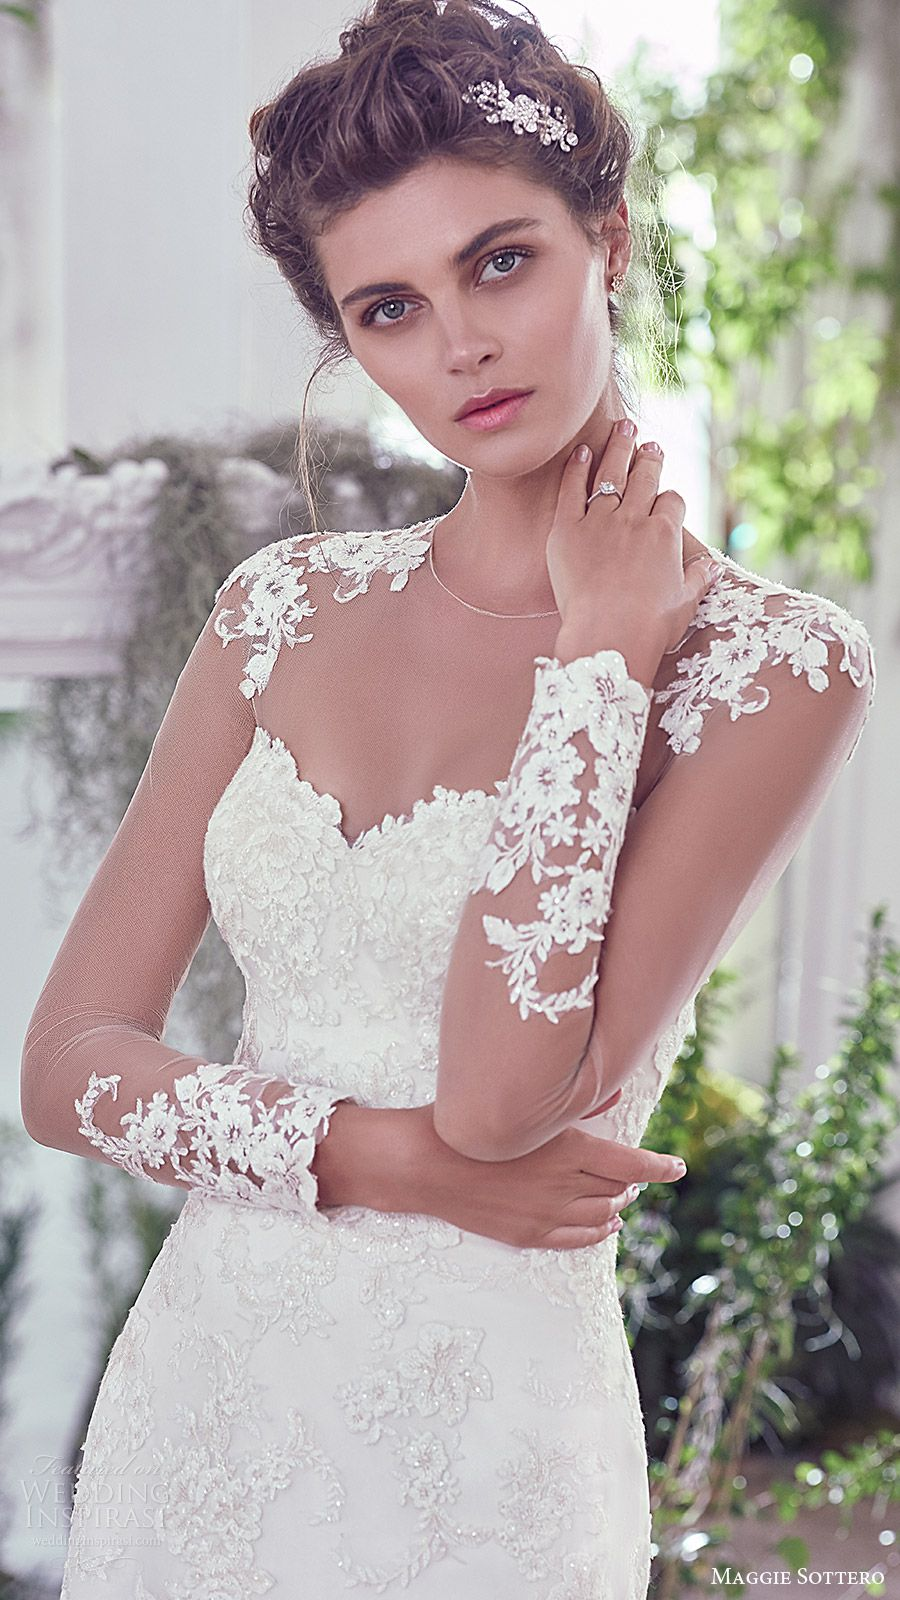 47978c1c52e long sleeves sweetheart illusion jewel neck lace sheath wedding dress  (rosaleigh) zfv train